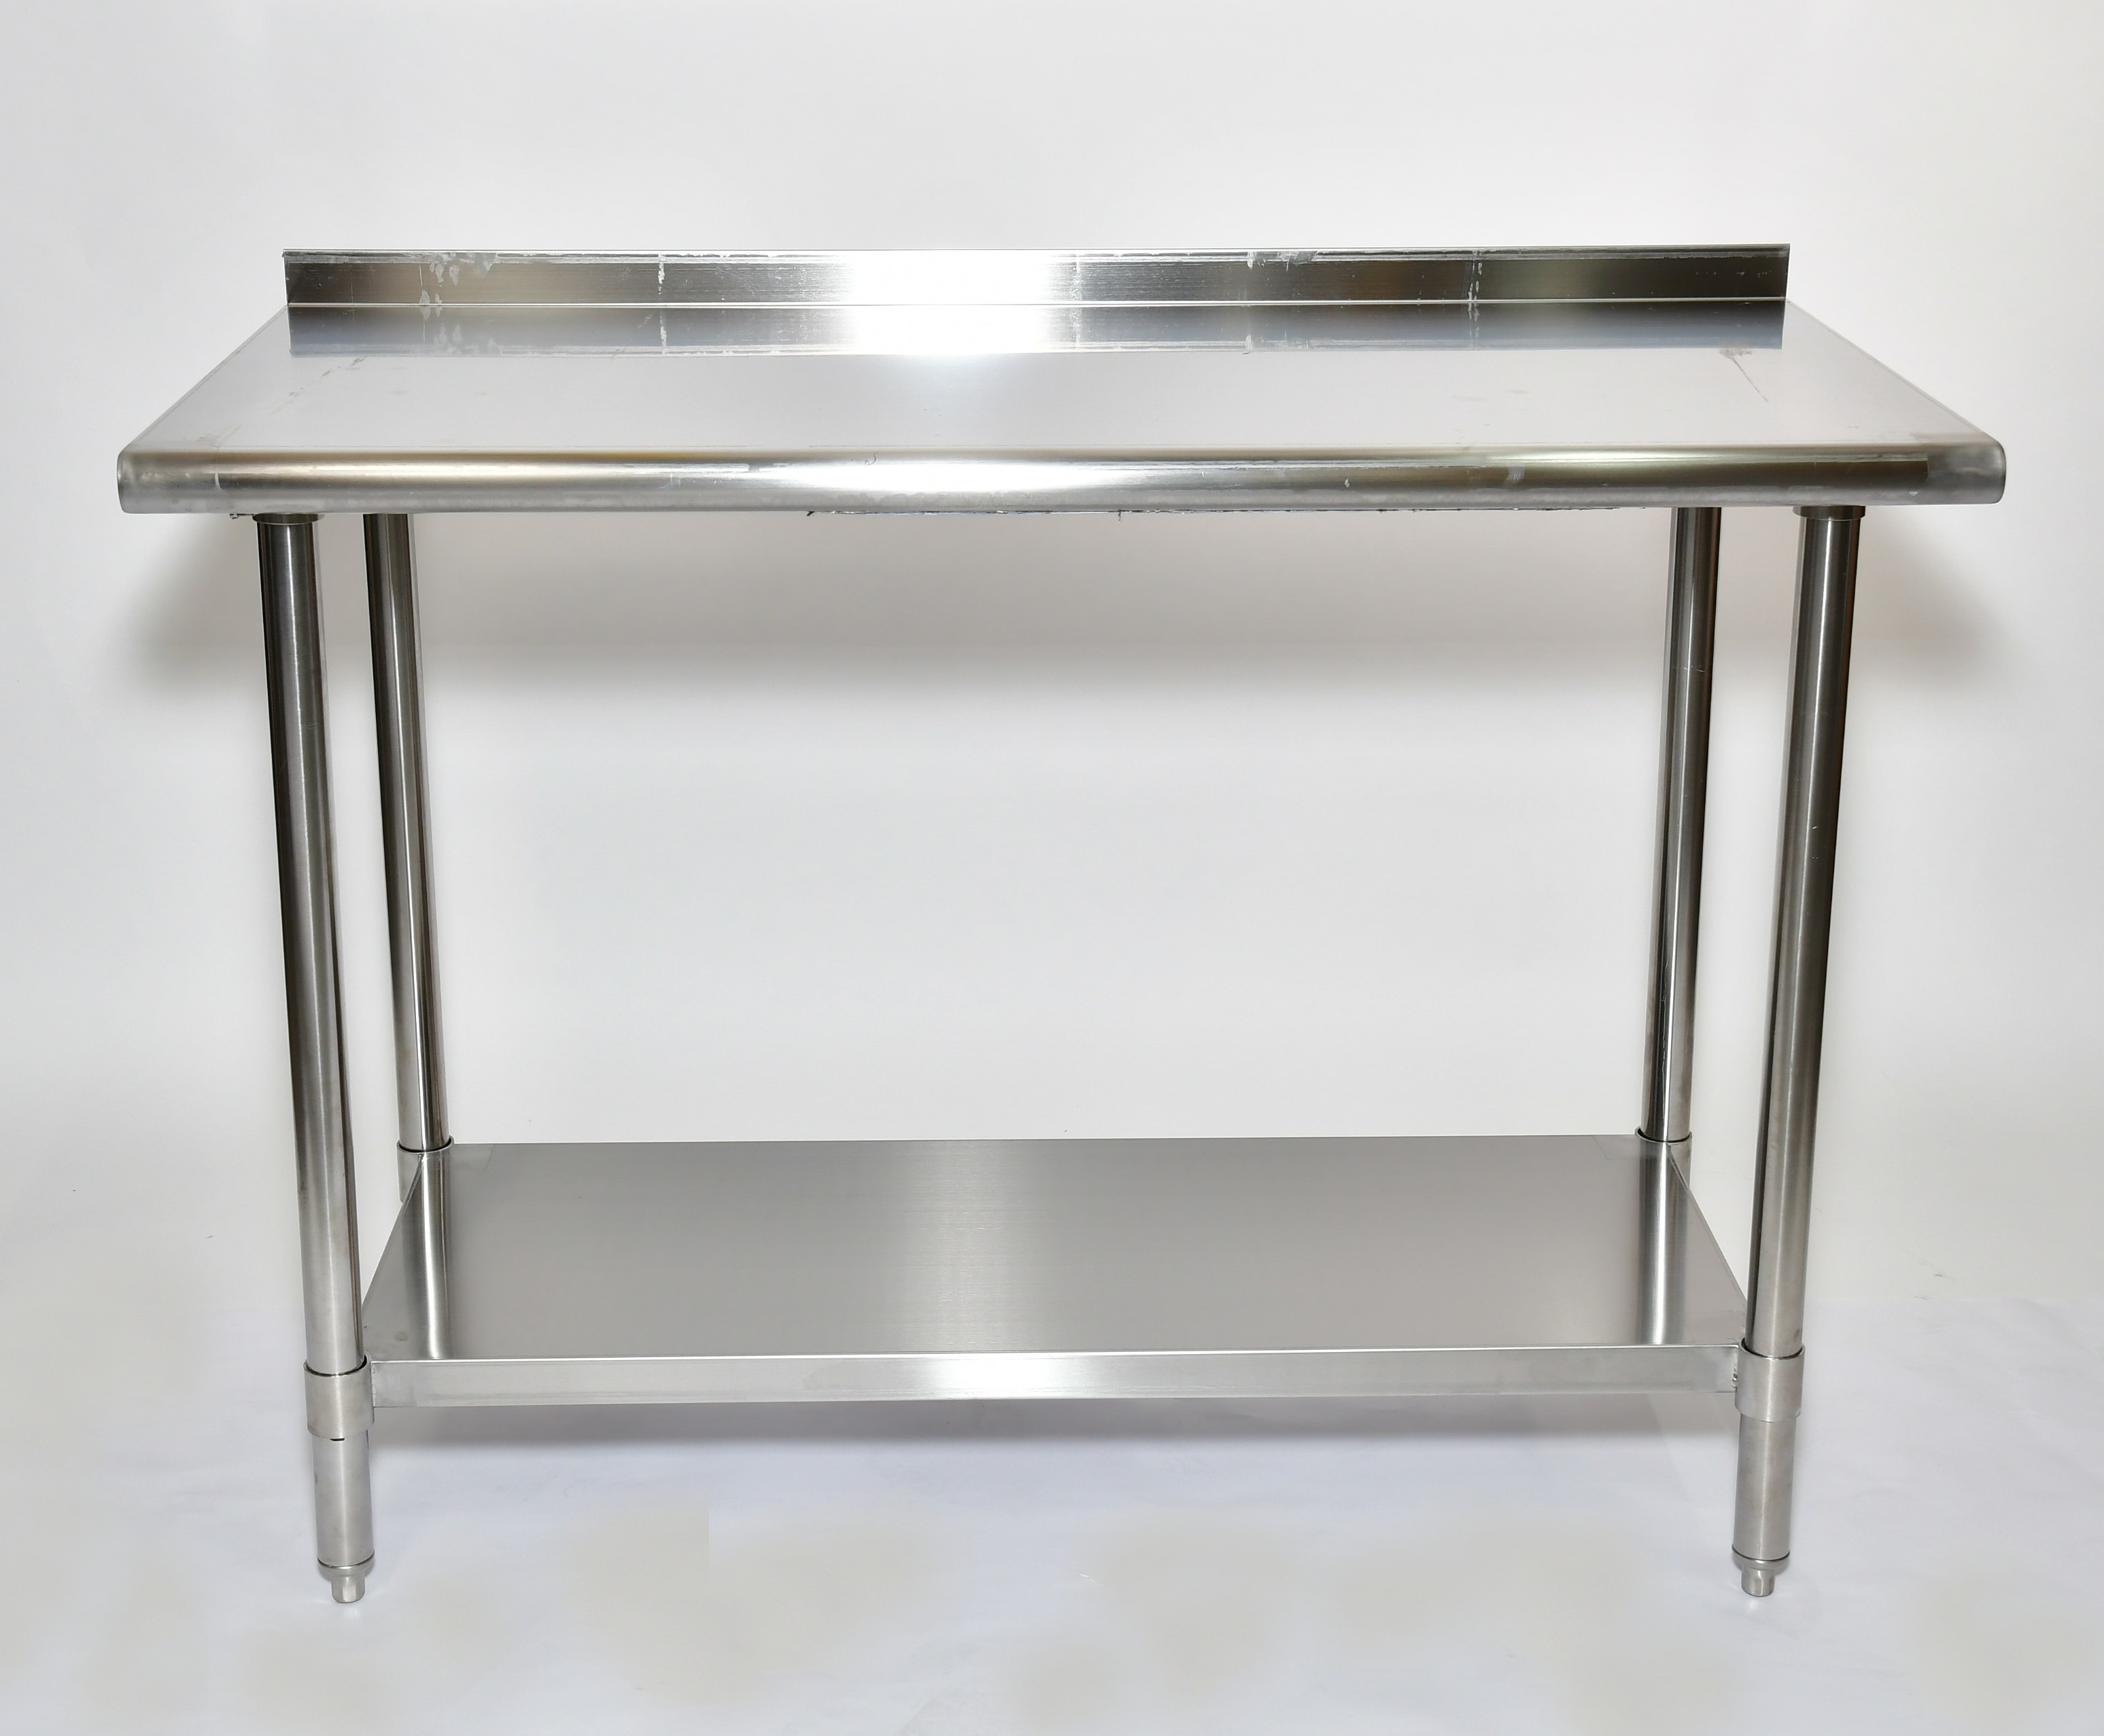 "Iron Guard-Work Table All SS 24 X 24,  430-16GA with 2"" Back Splash 18GA Undershelf (SKIWT2424EBS) 